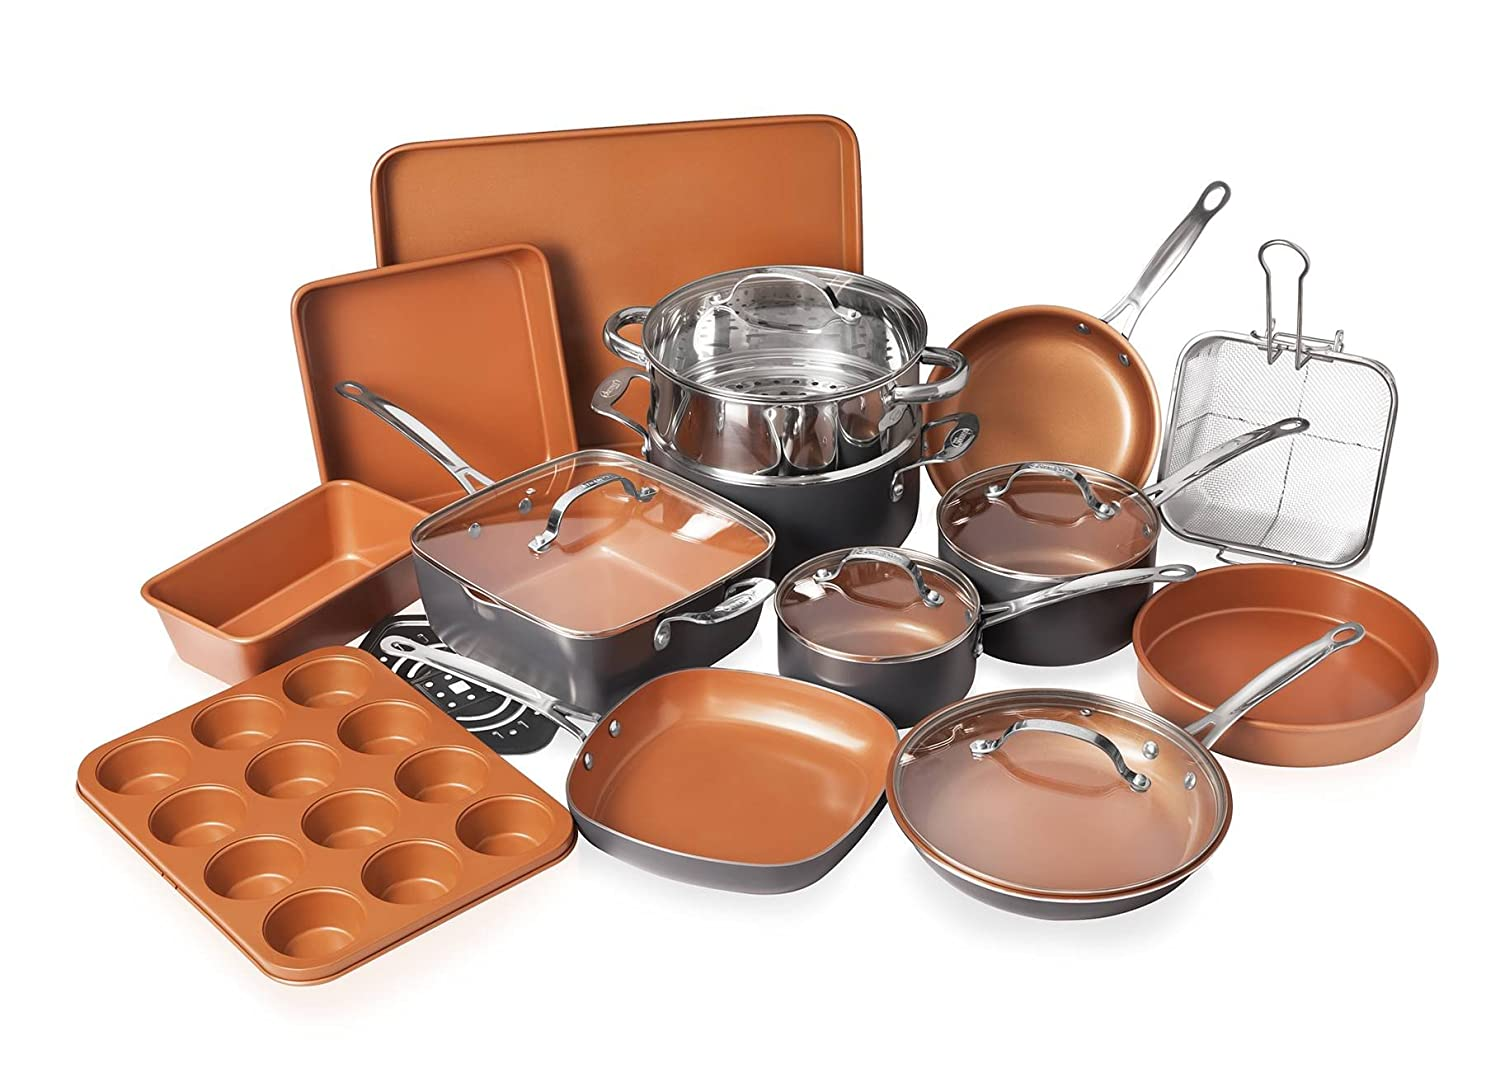 Gotham Steel 20 Piece All in One Kitchen Cookware + Bakeware Set with Non-Stick Ti-Cerama Copper Coating – Includes Skillets, Stock Pots, Deep Square Pan with Fry Basket, Cookie Sheet and Baking Pans 1922